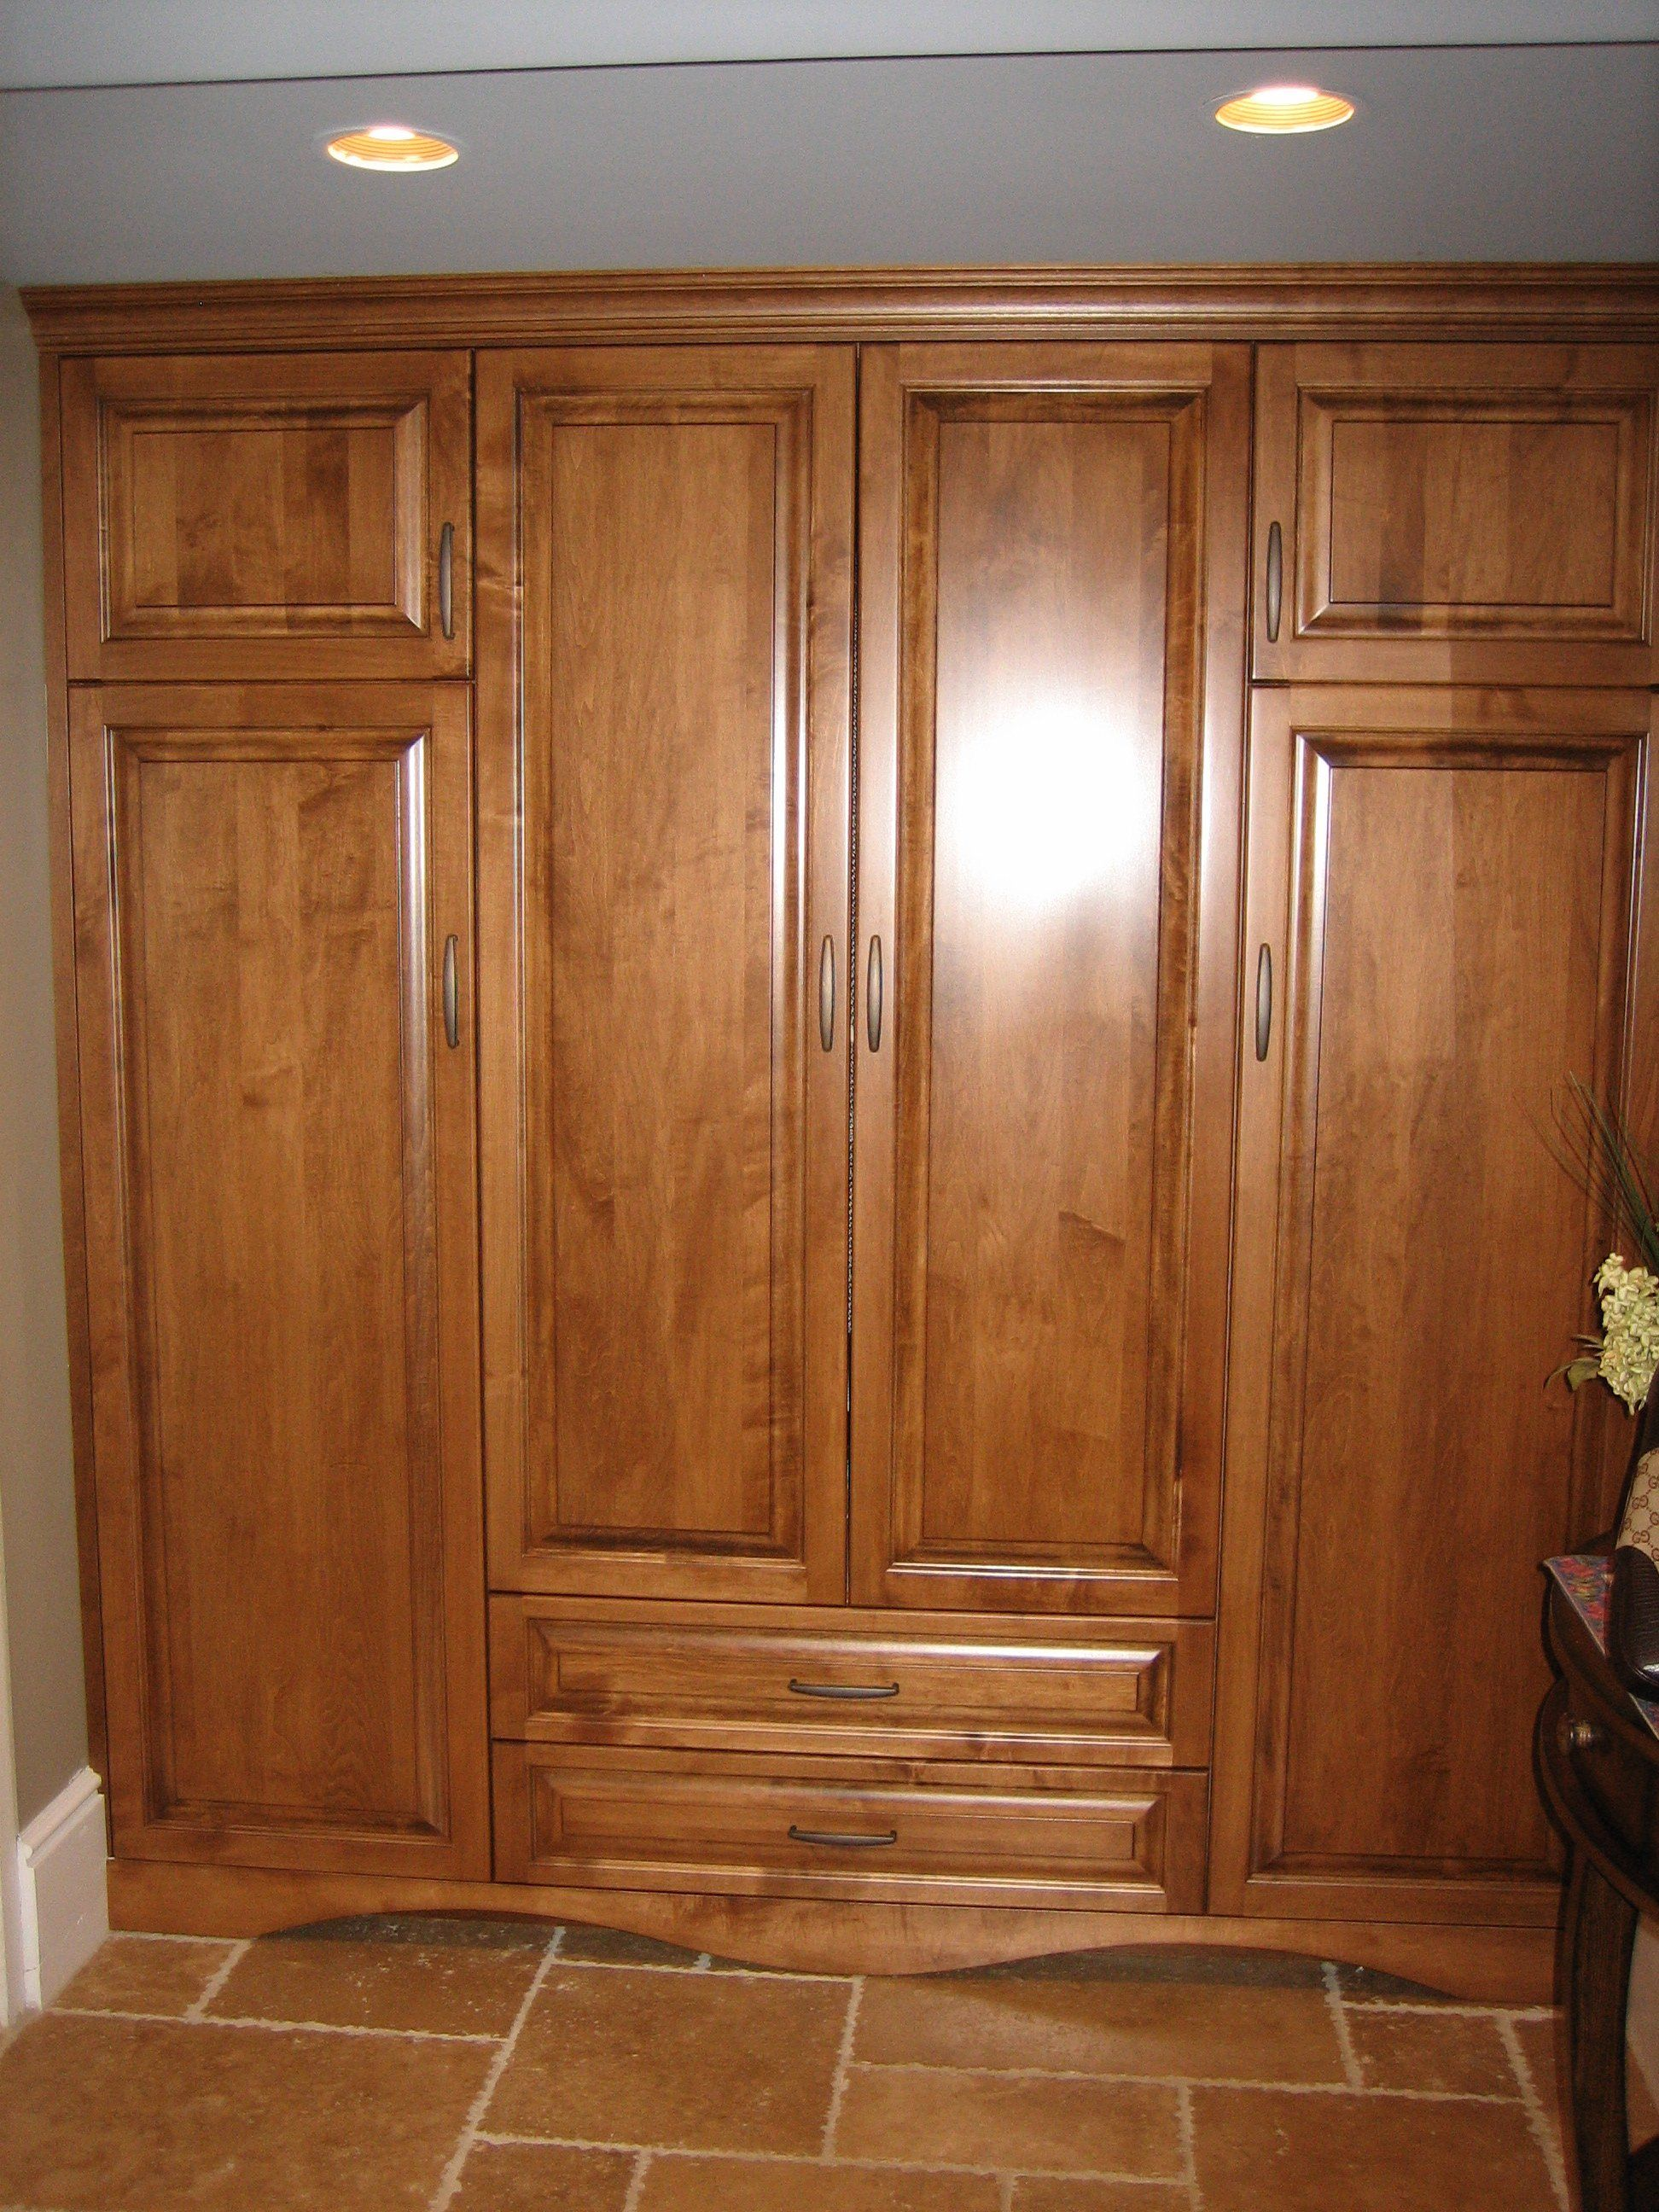 Foyer Storage : Entry way closet for storage of coats and shoes. foyer